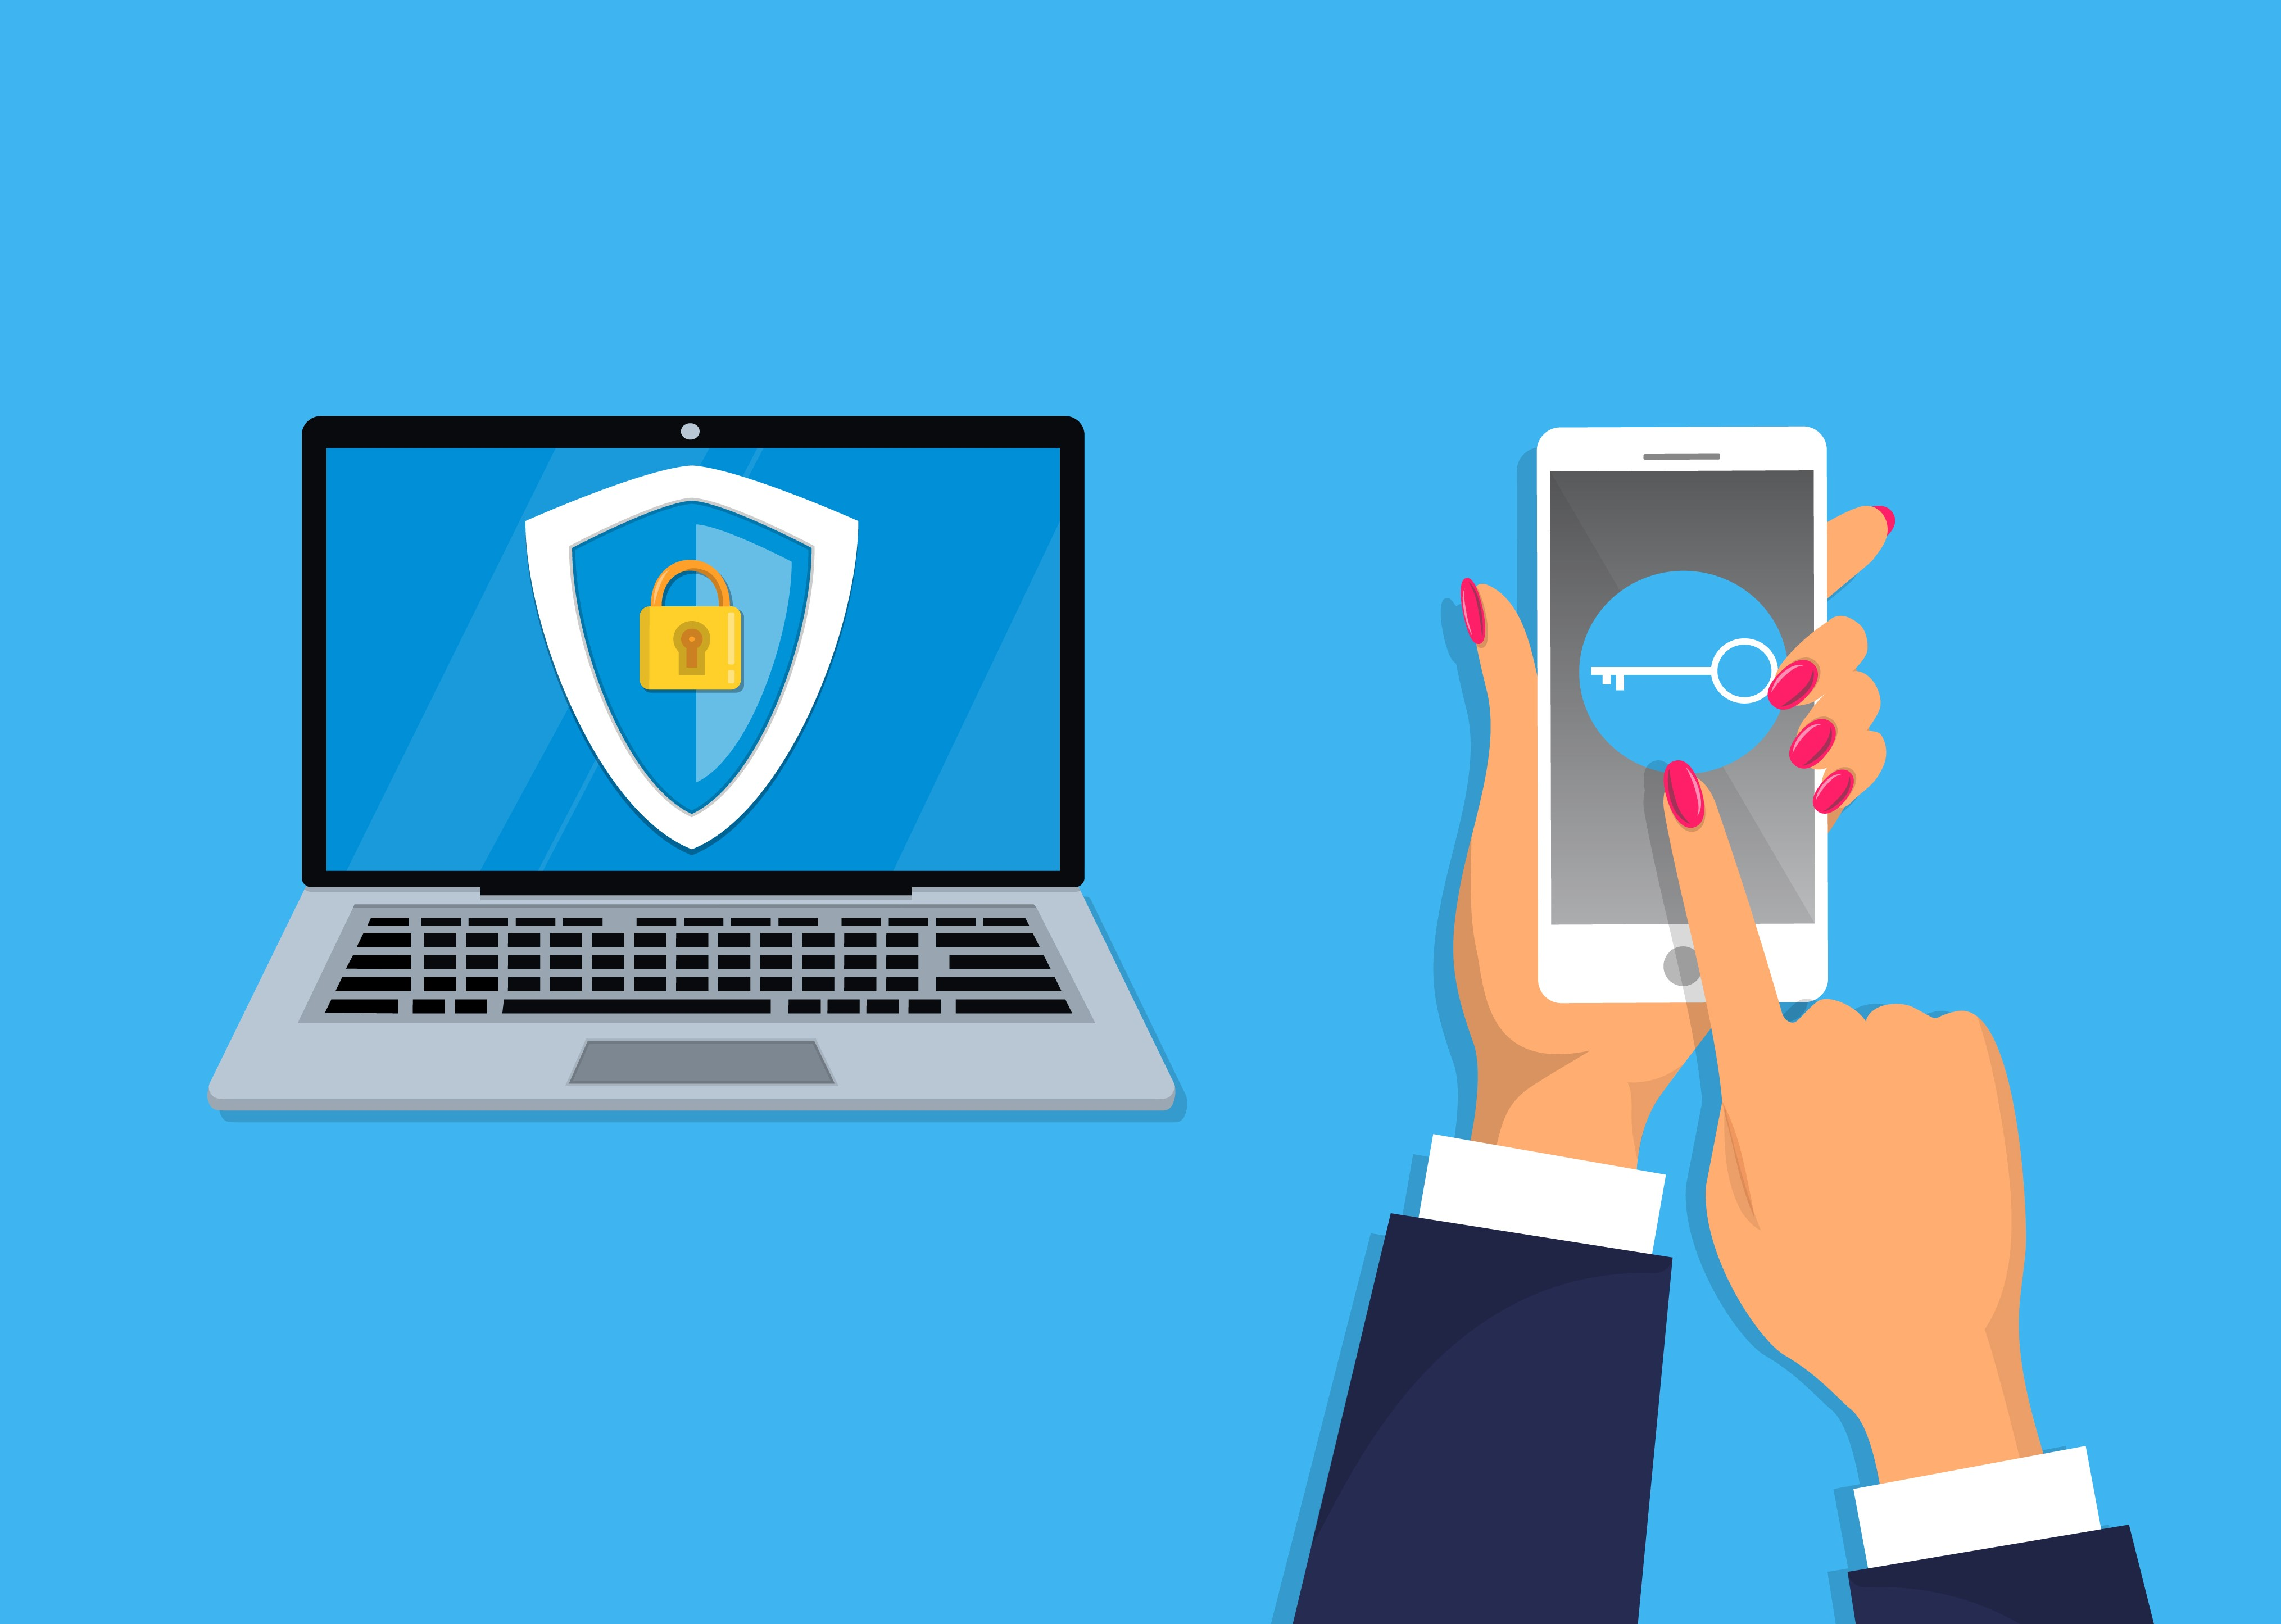 NO-multifactor-authentication-mobile